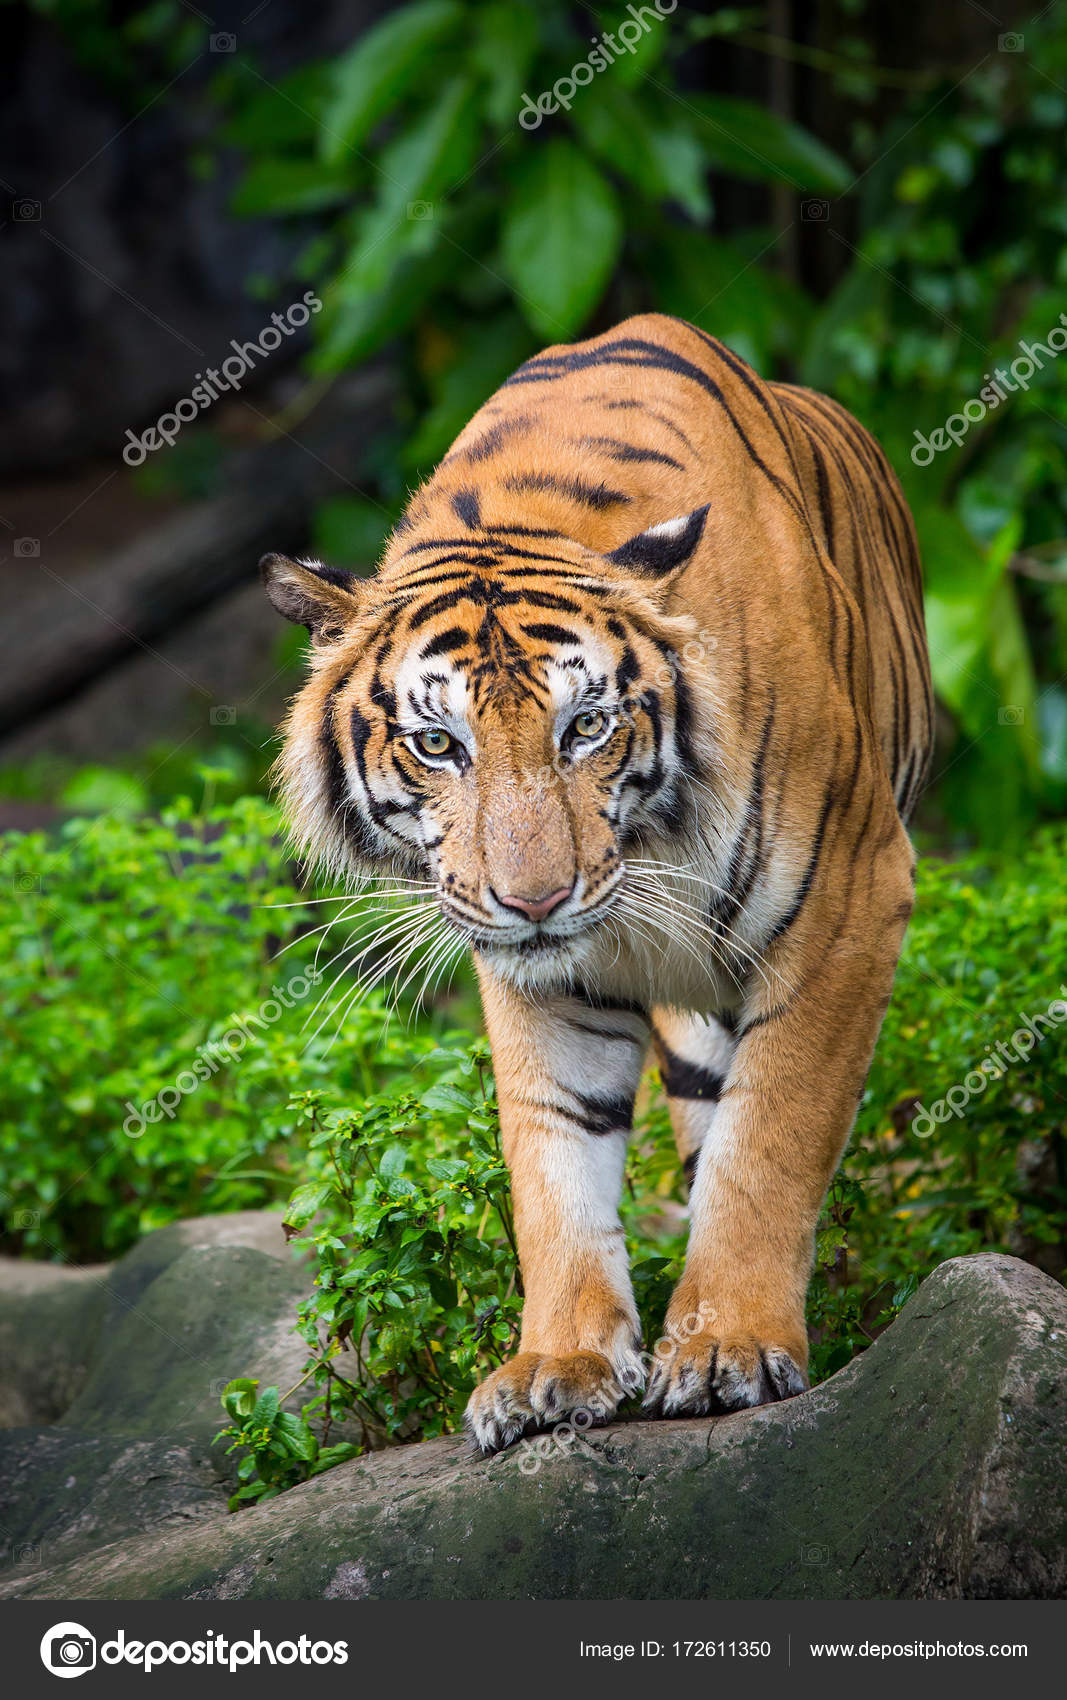 bengal tiger standing with bamboo bushes in background — stock photo